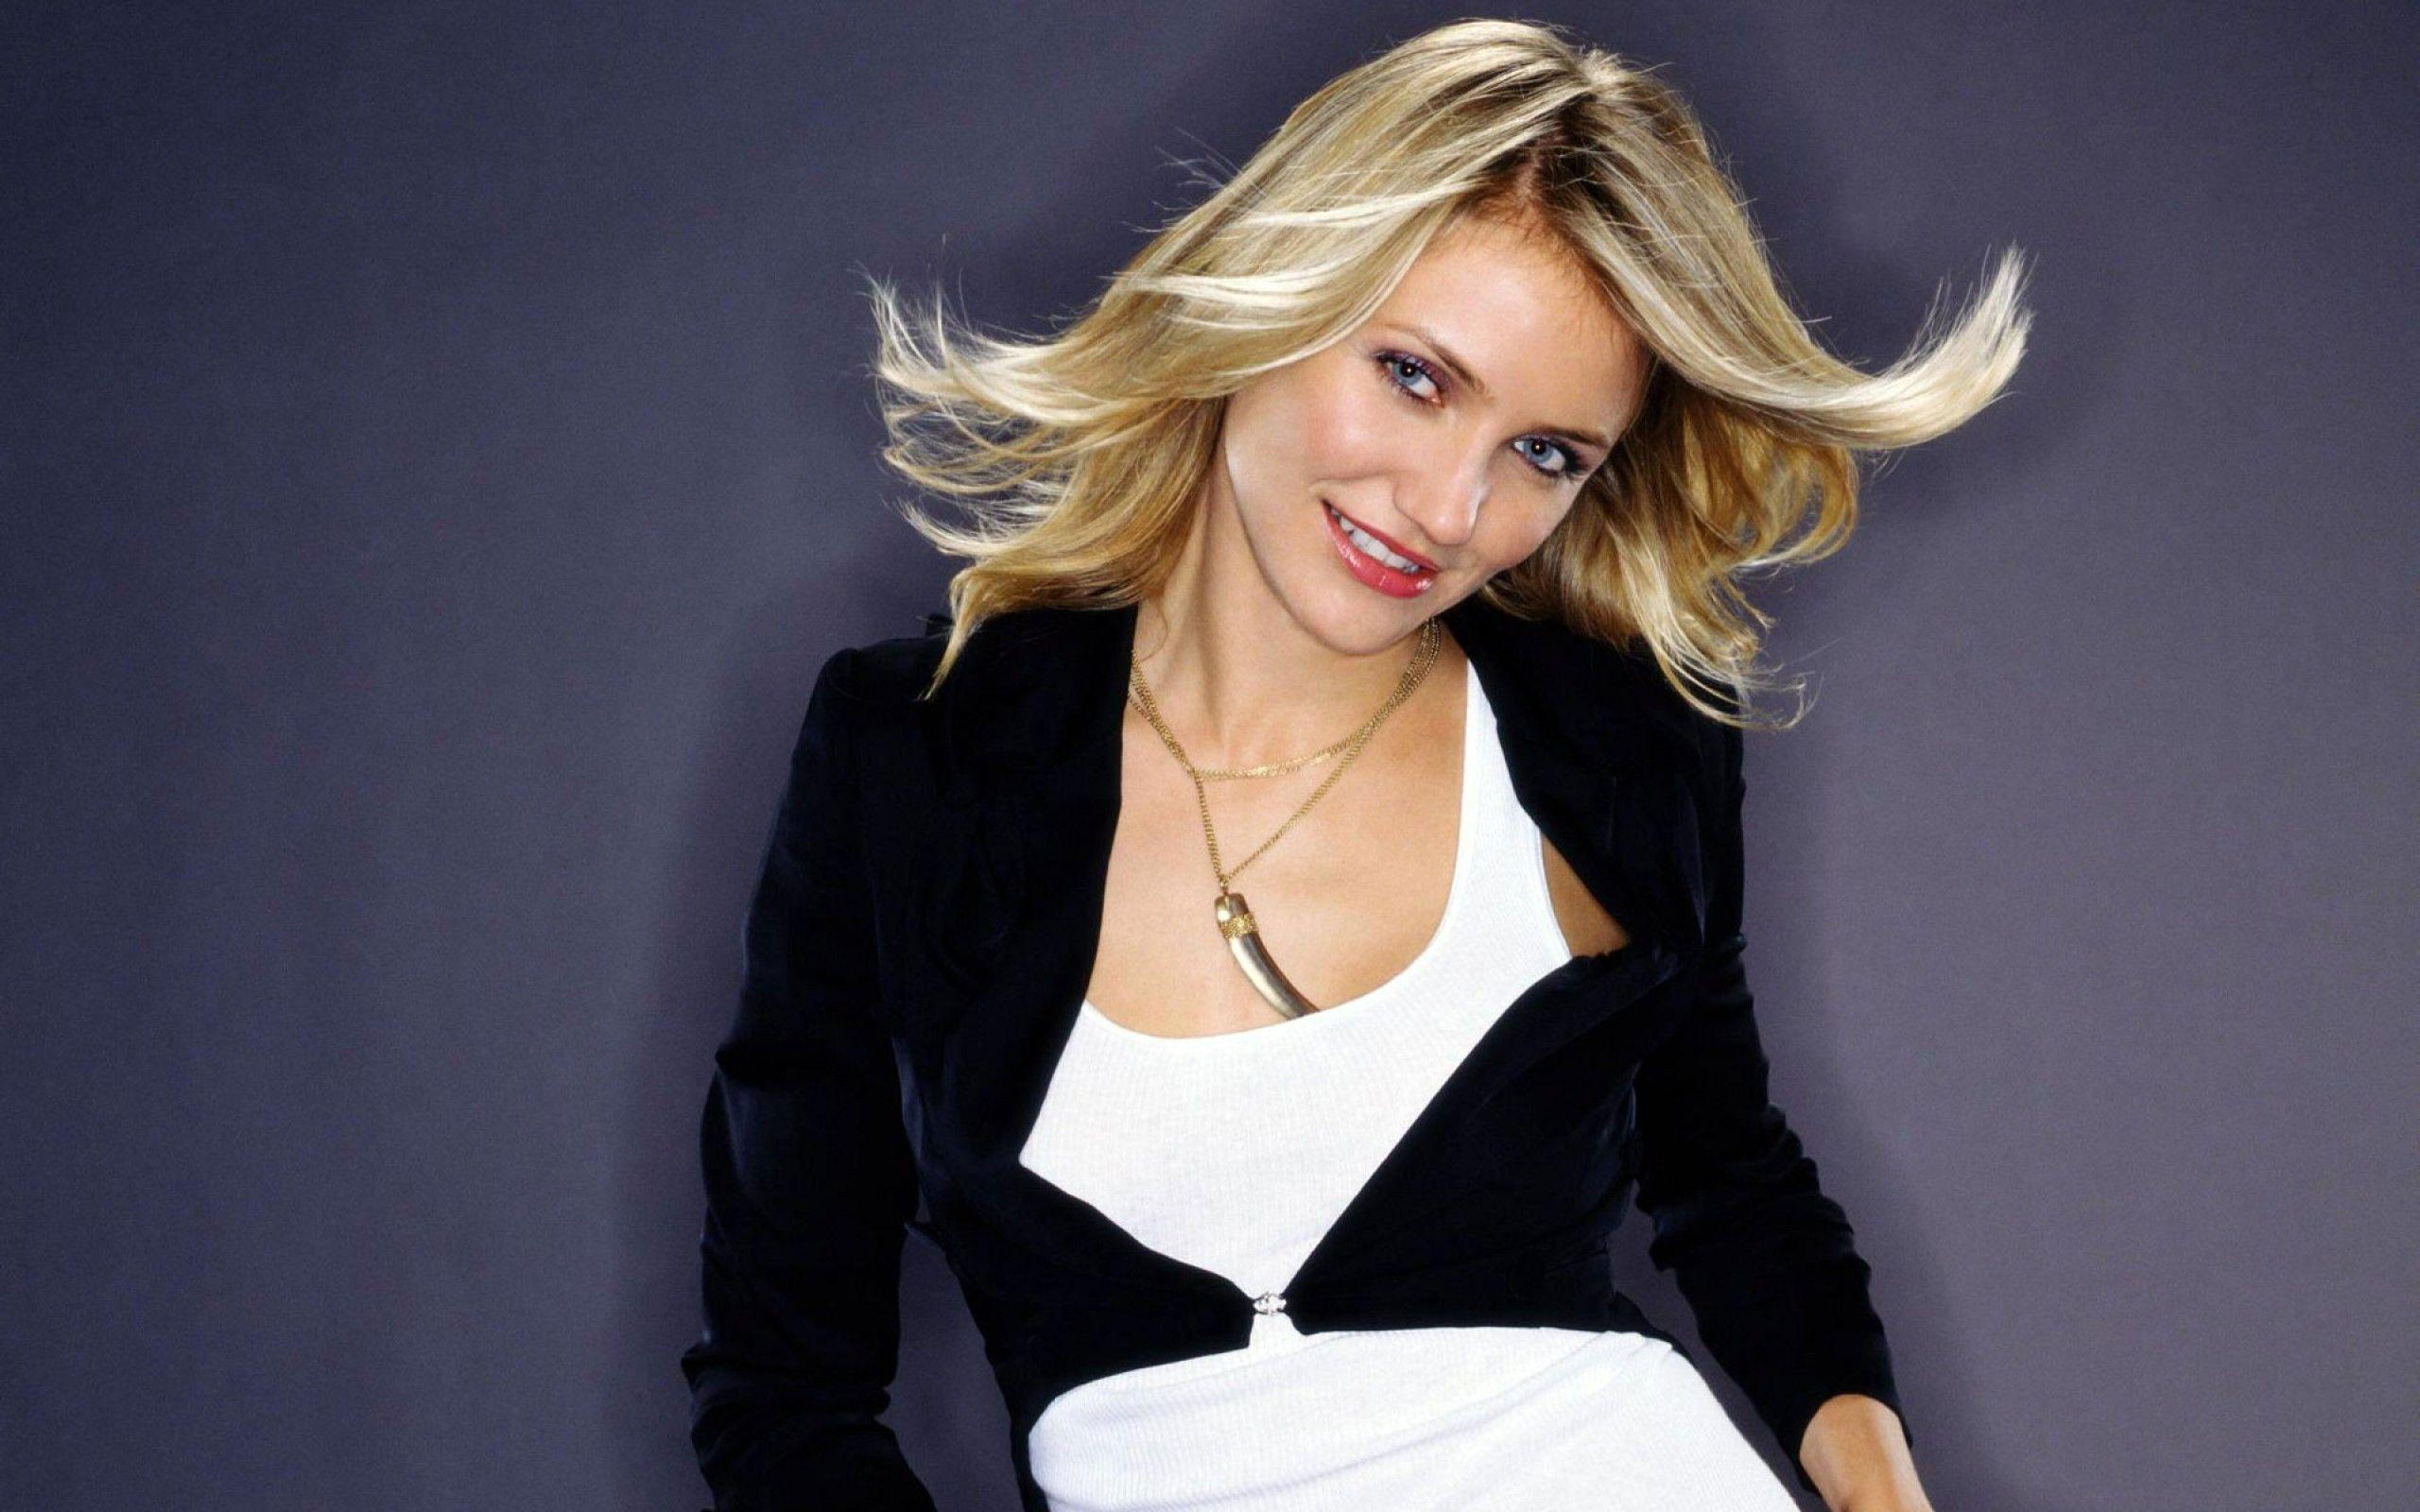 Cameron Diaz 15 Hollywood Actress Wallpapers